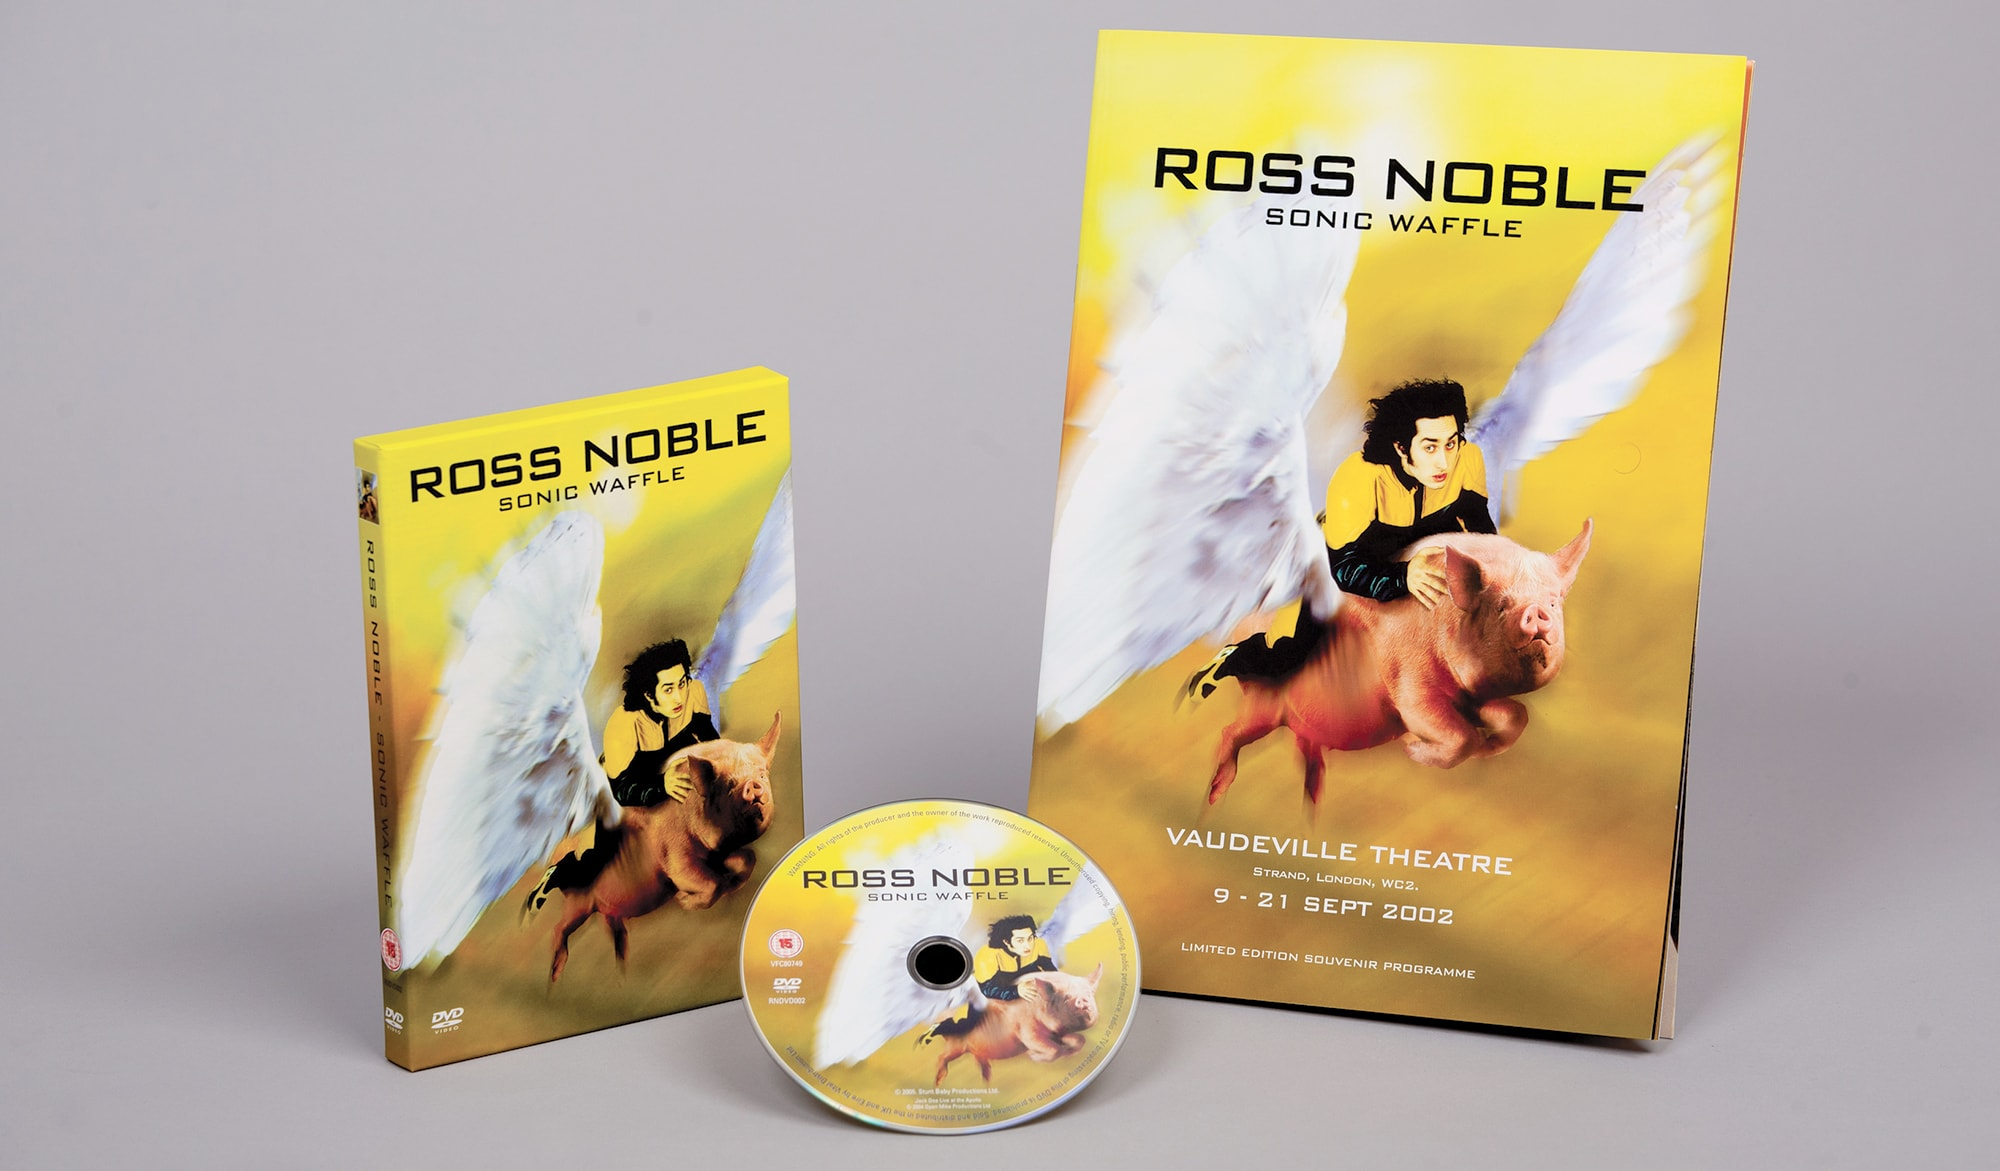 Ross Noble - Sonic Waffle DVD - packaging